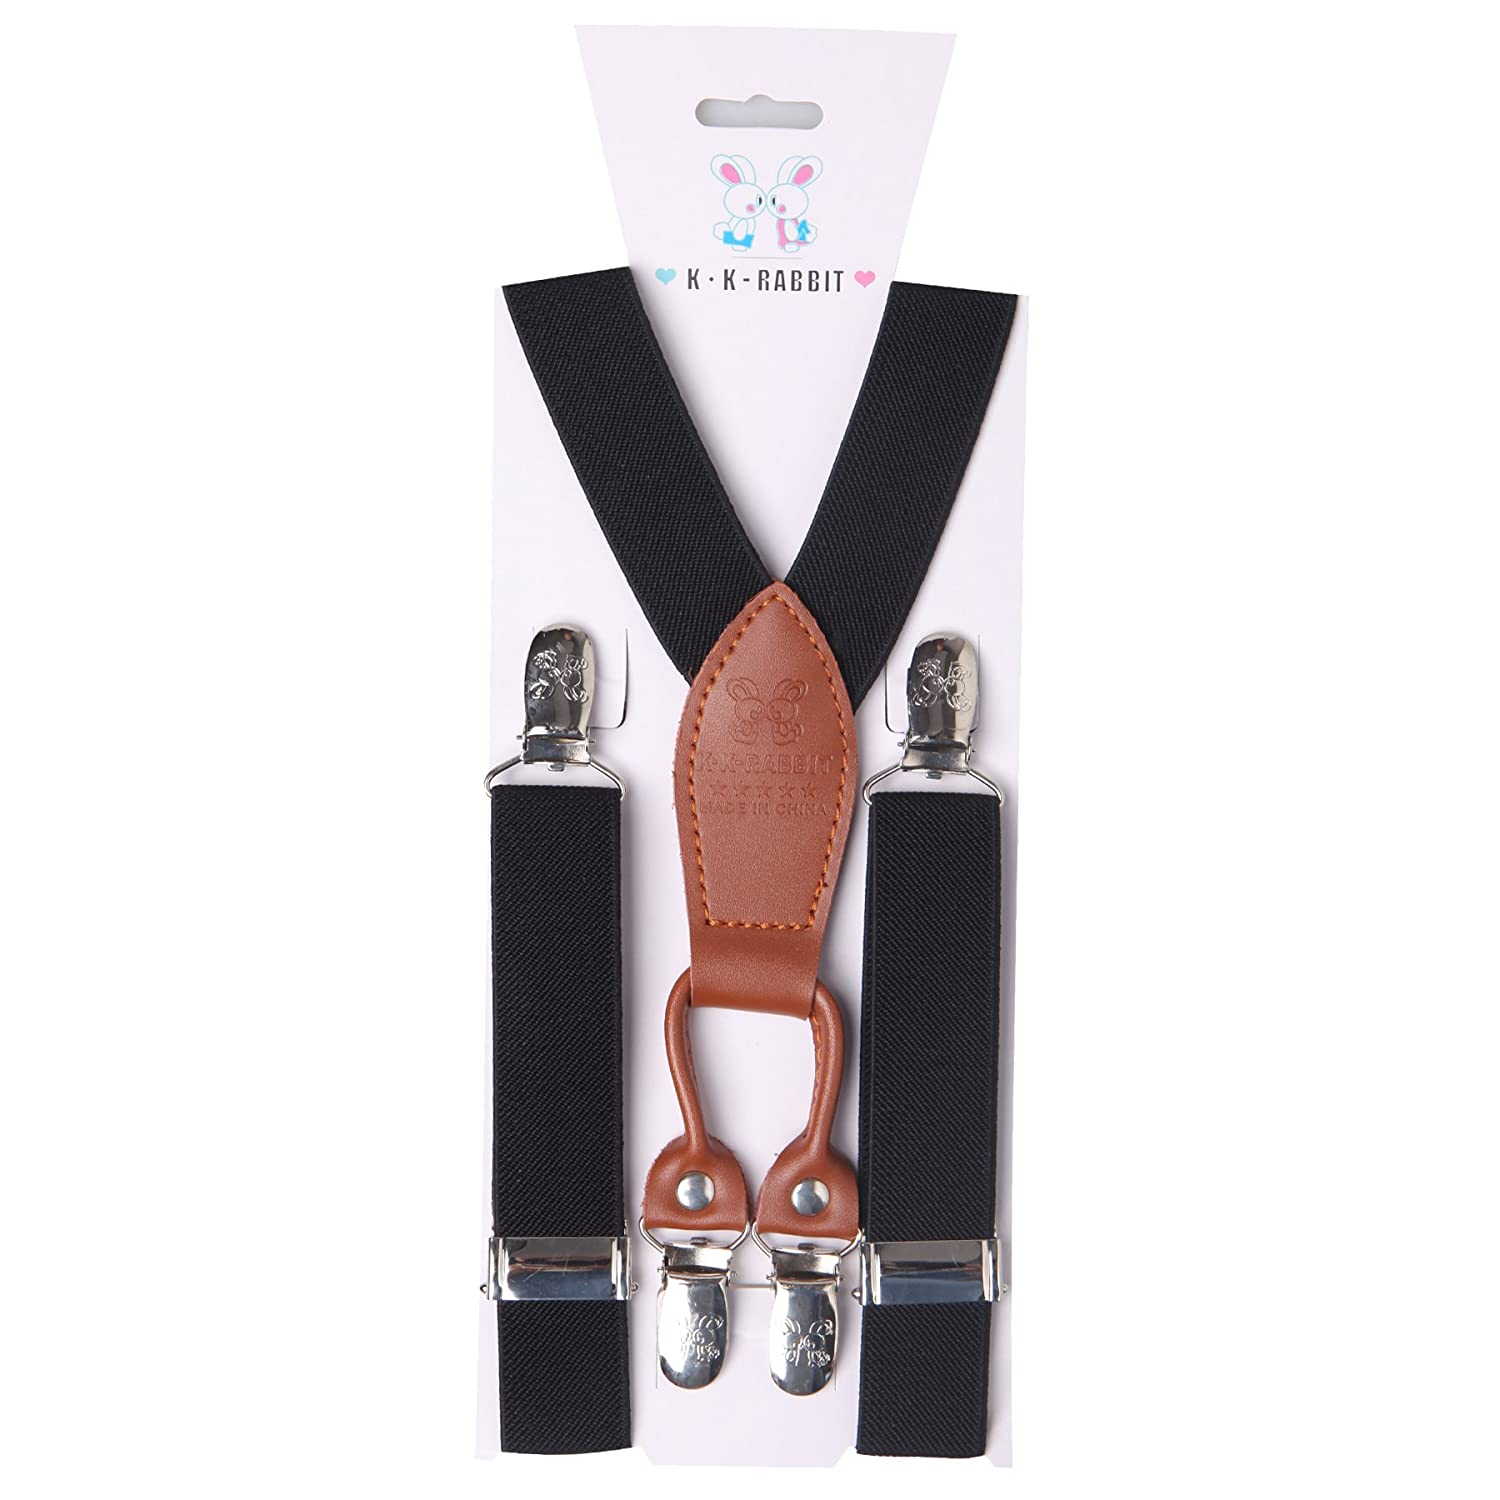 K·K-RABBIT®Children's adjustable Elasticated Clip on Braces Plain Coloured Kids Braces Suspenders X shape Perfect Match With Bow Tie